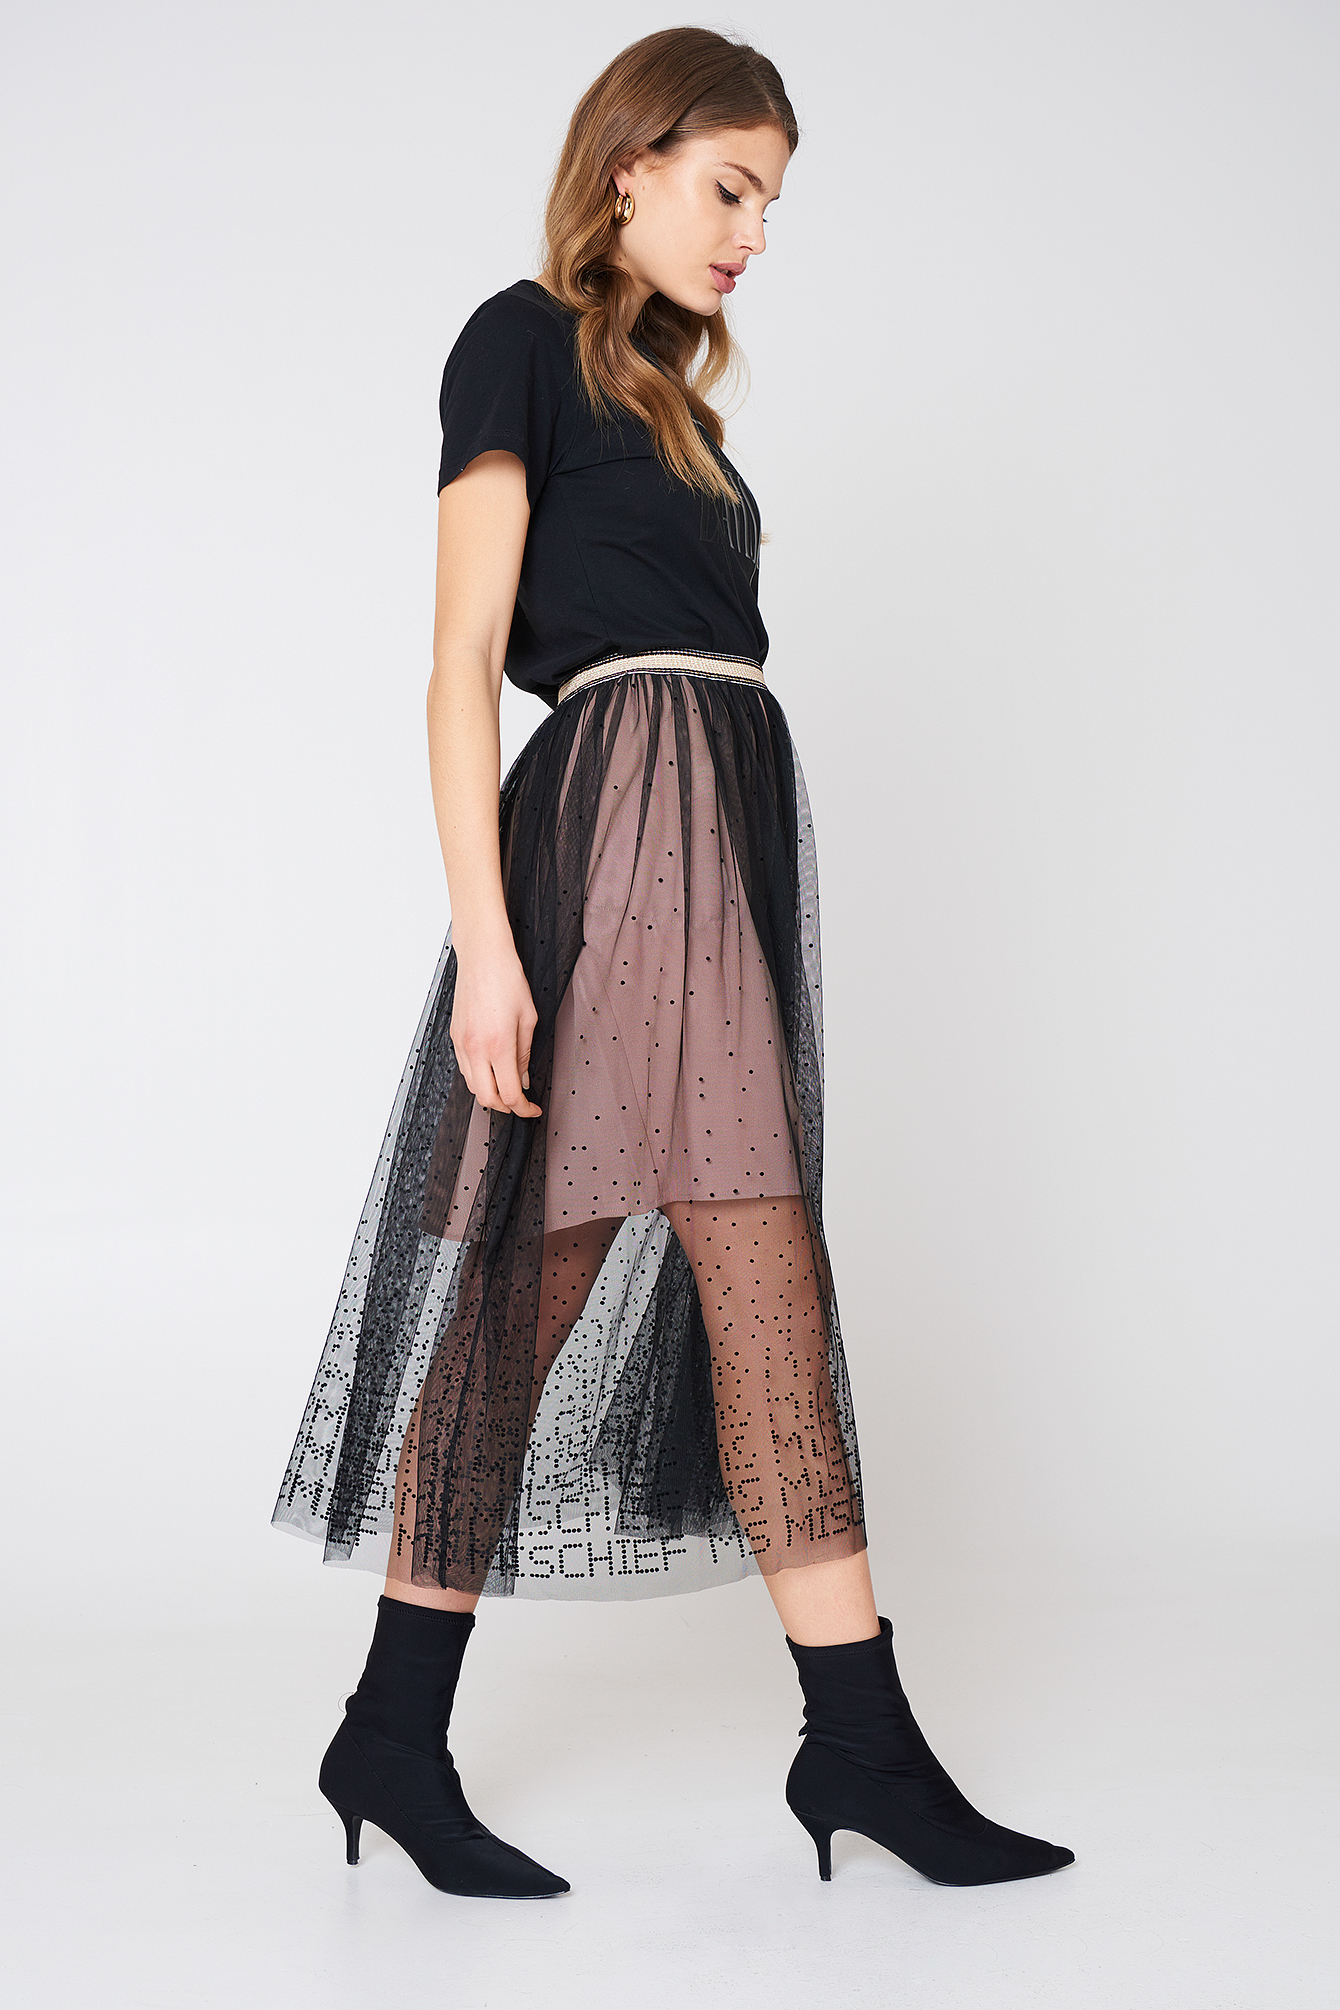 Loish Skirt NA-KD.COM